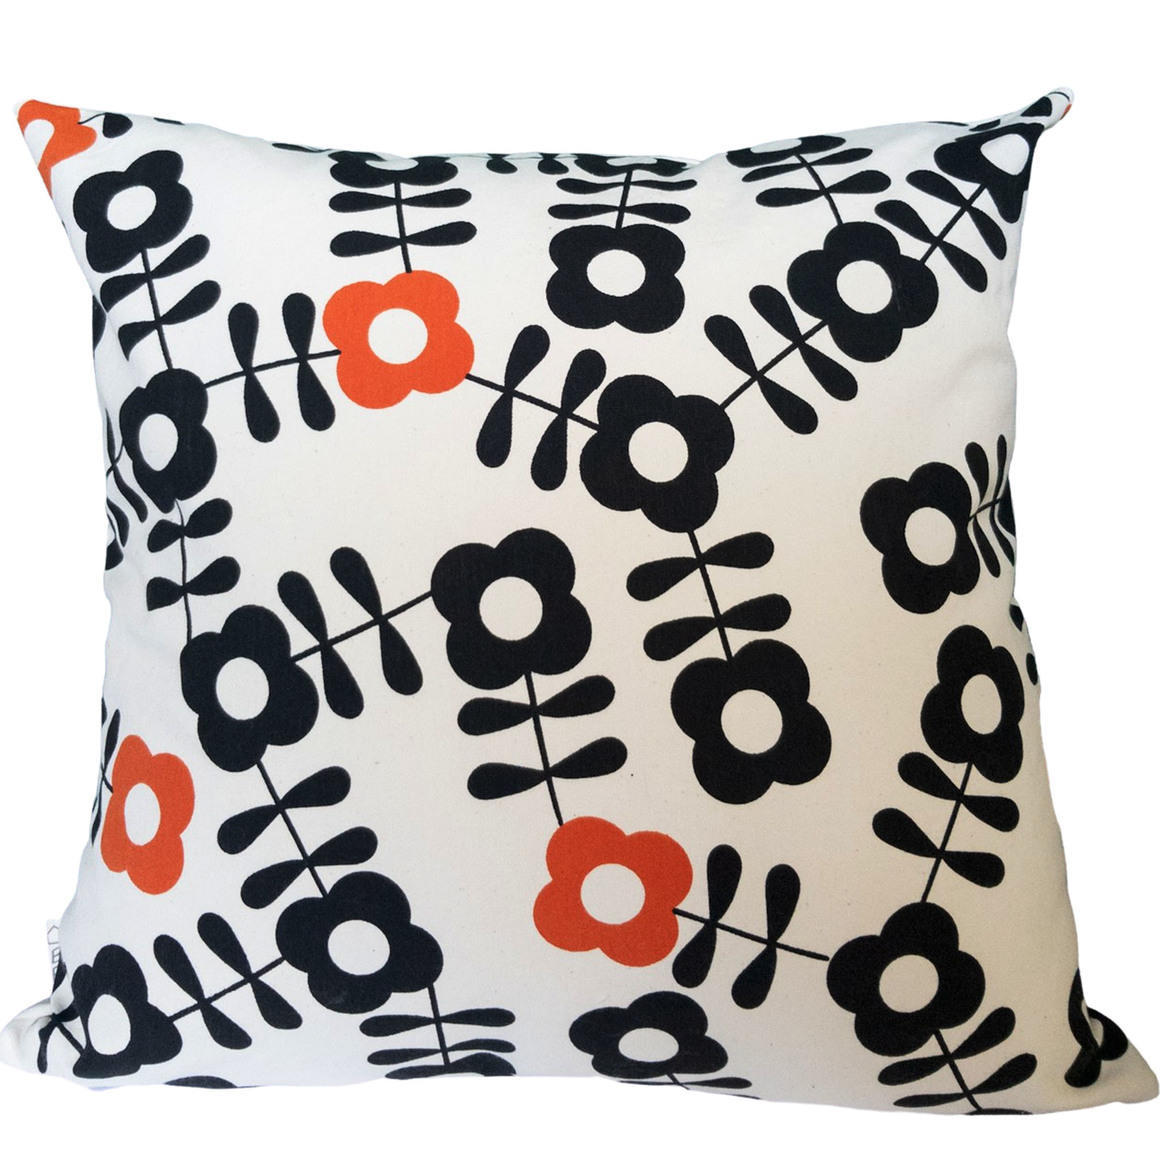 Black and Orange Vintage Inspired Floral Design-100% Cotton-Hand Screen Printed-Cover Only | Trada Marketplace